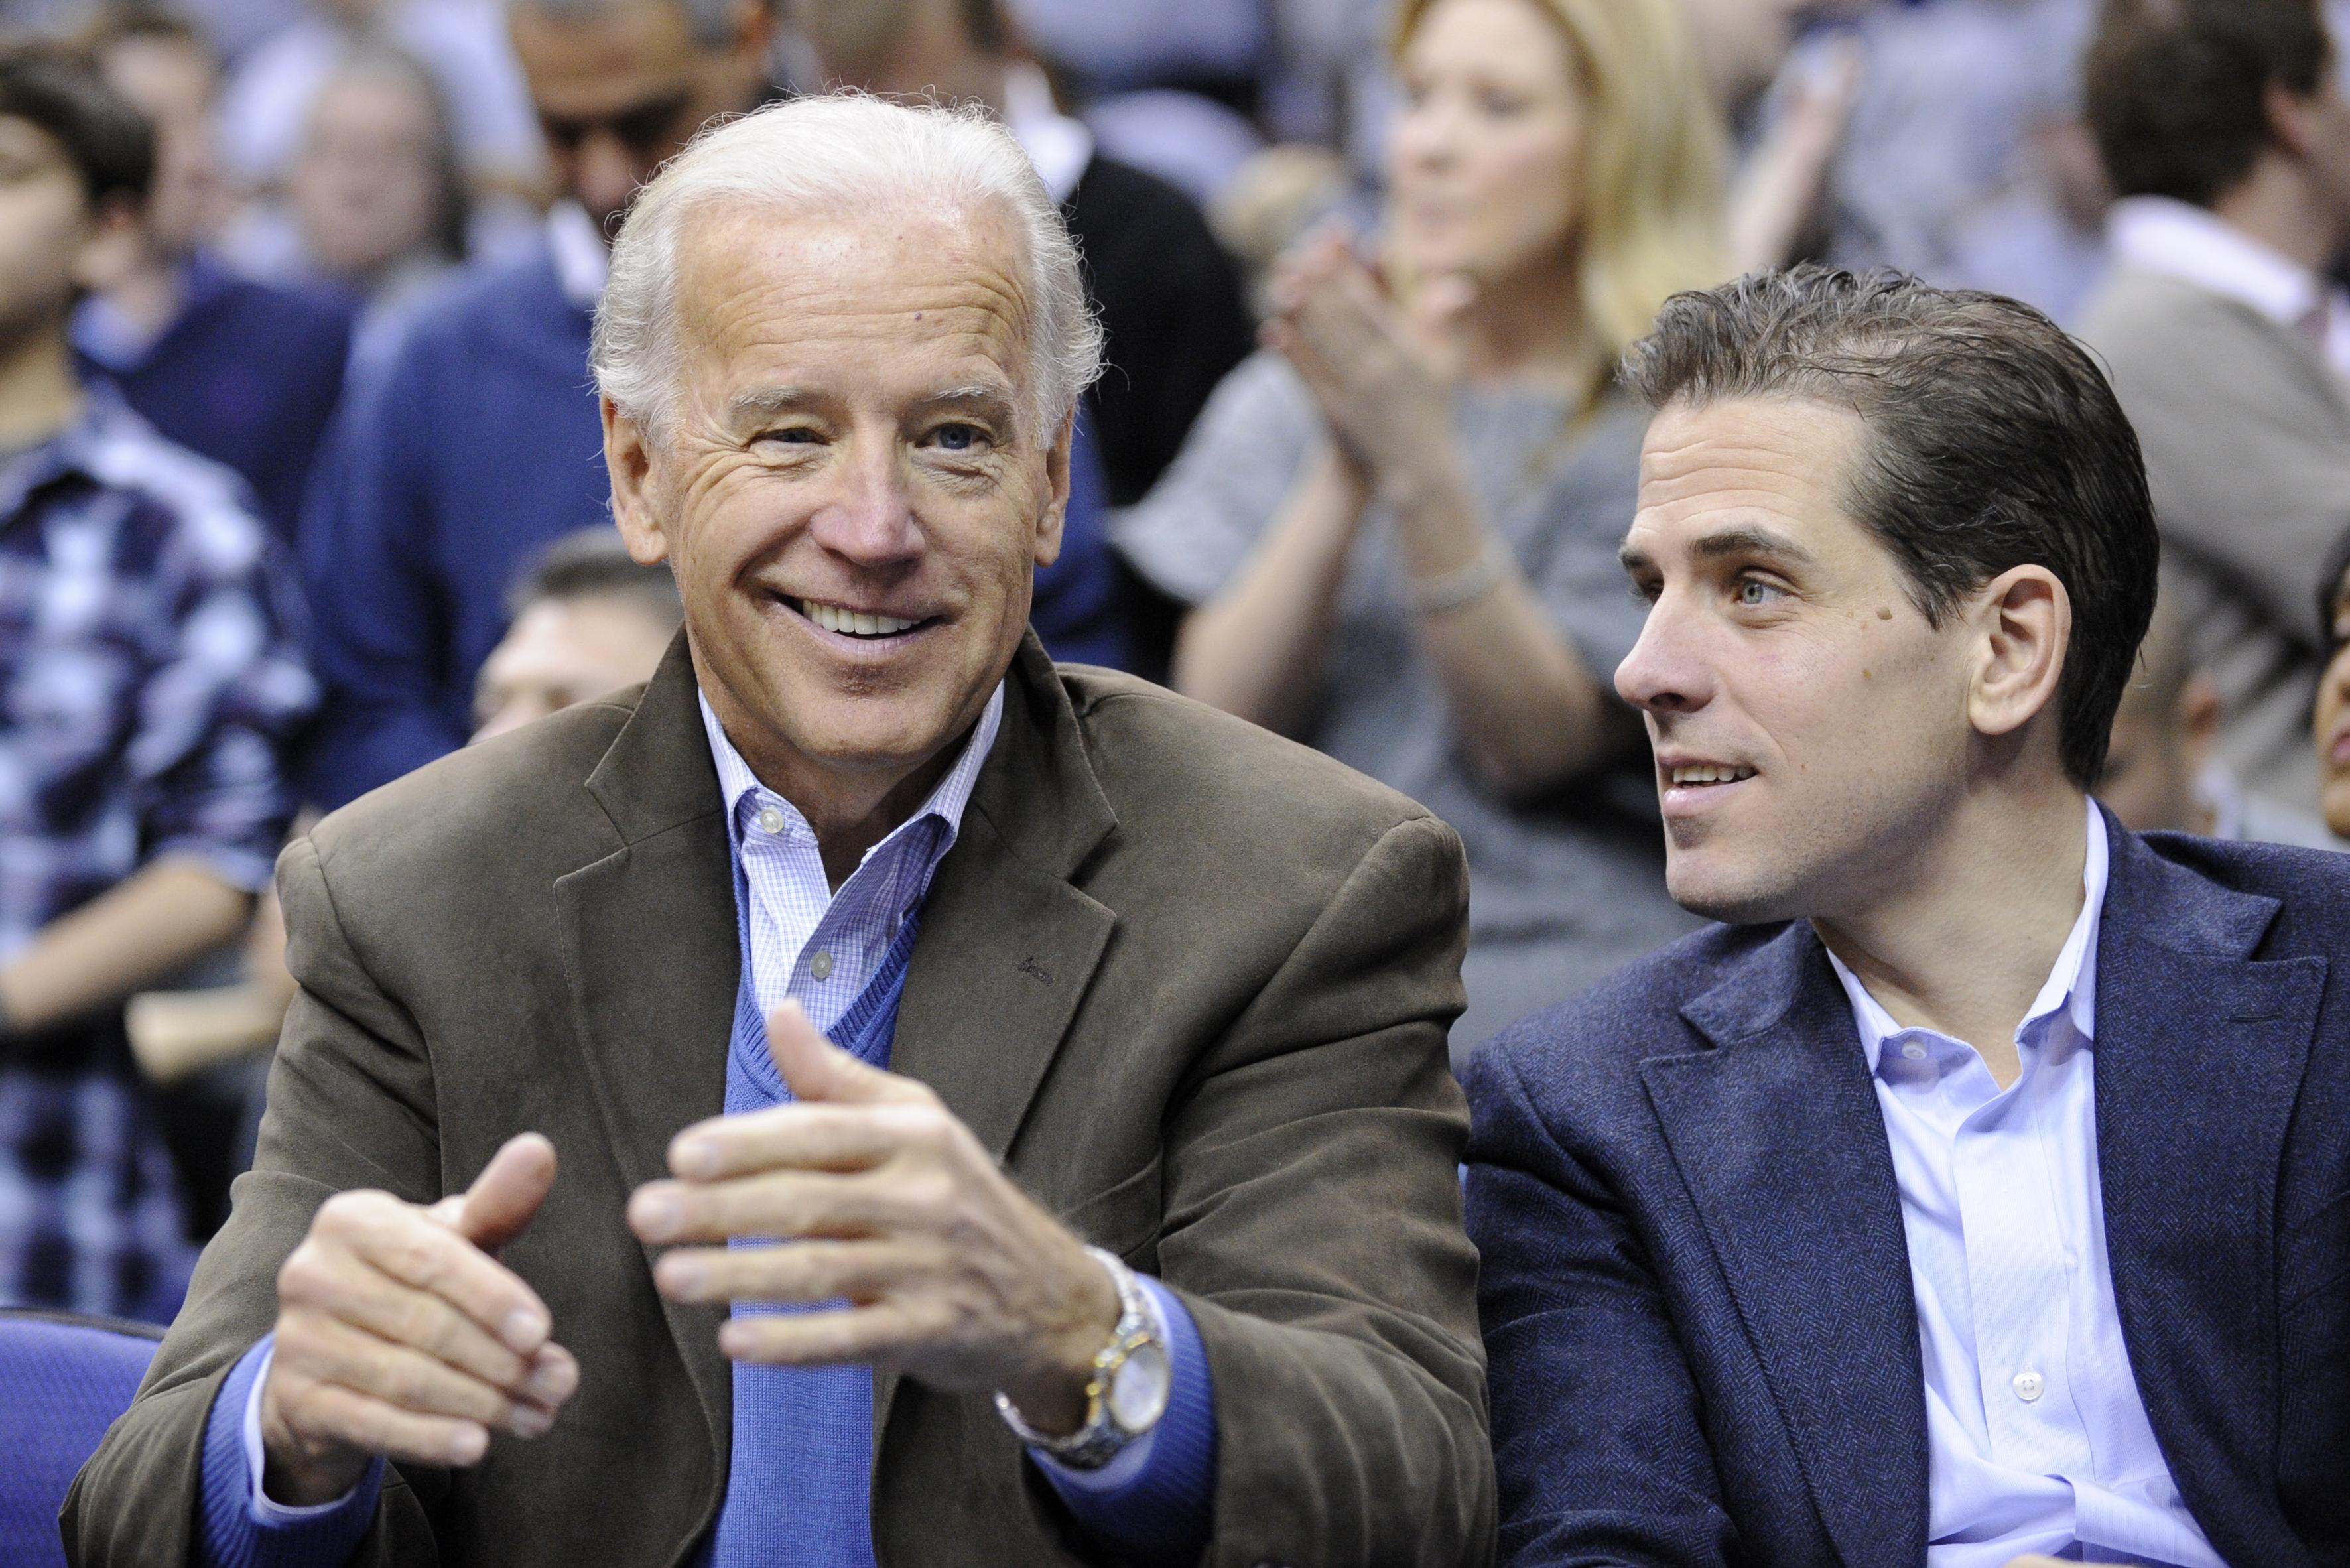 The Latest: Joe Biden lays out ethical markers should he win